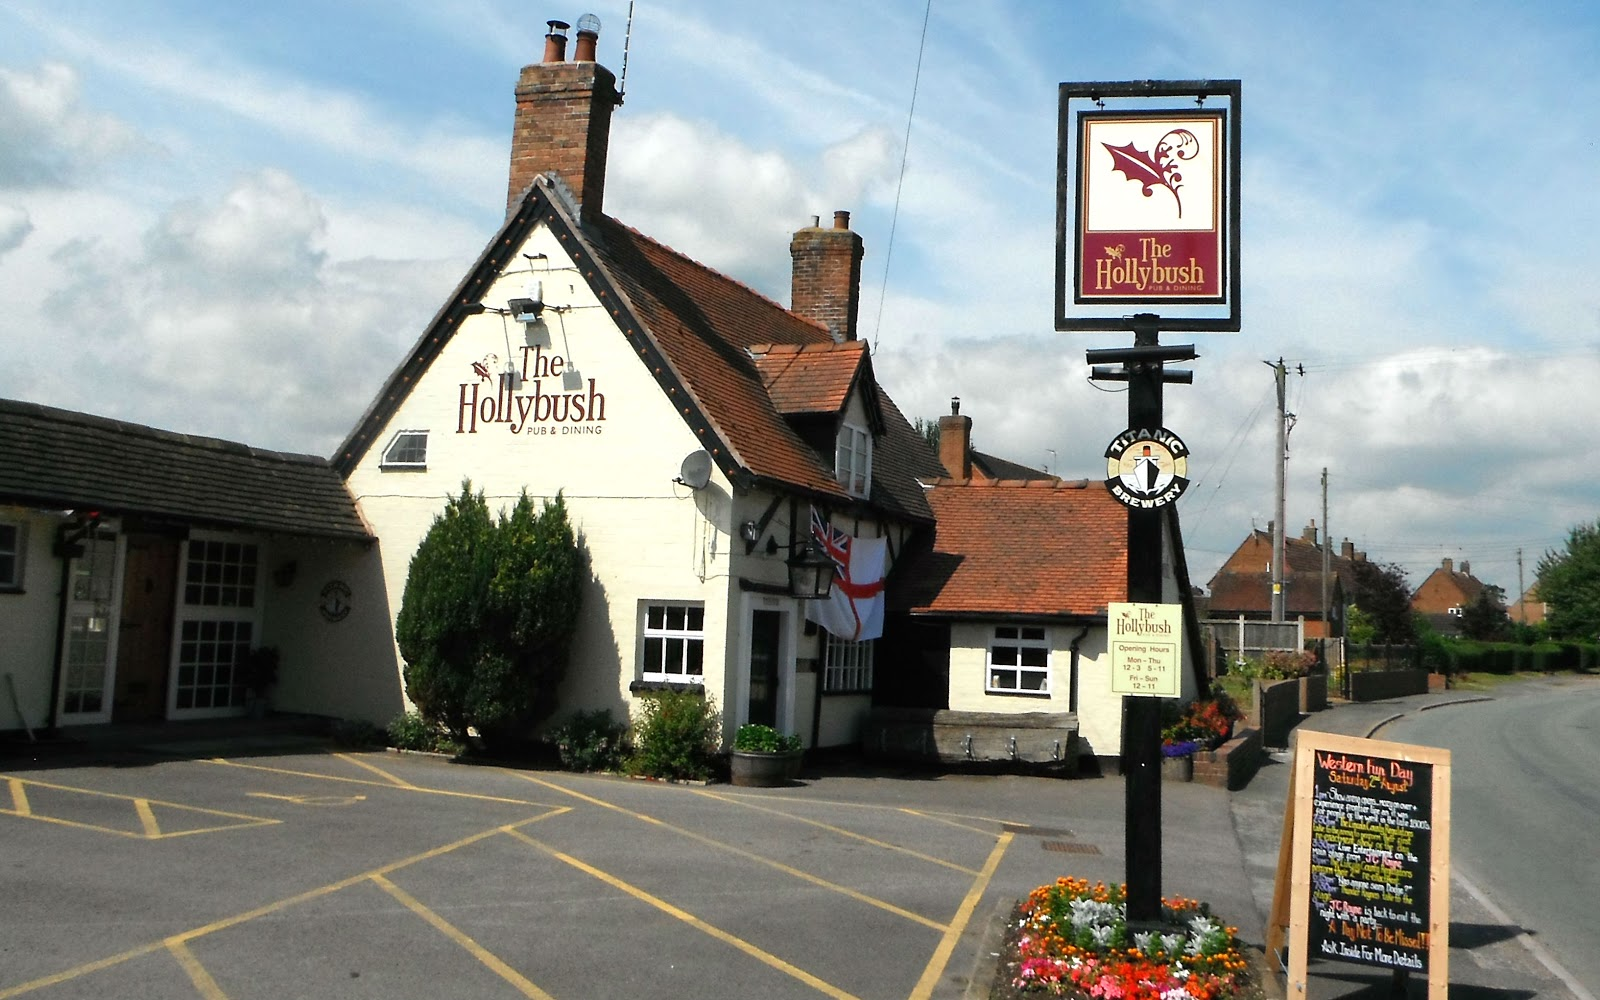 The Hollybush Pub at Seighford